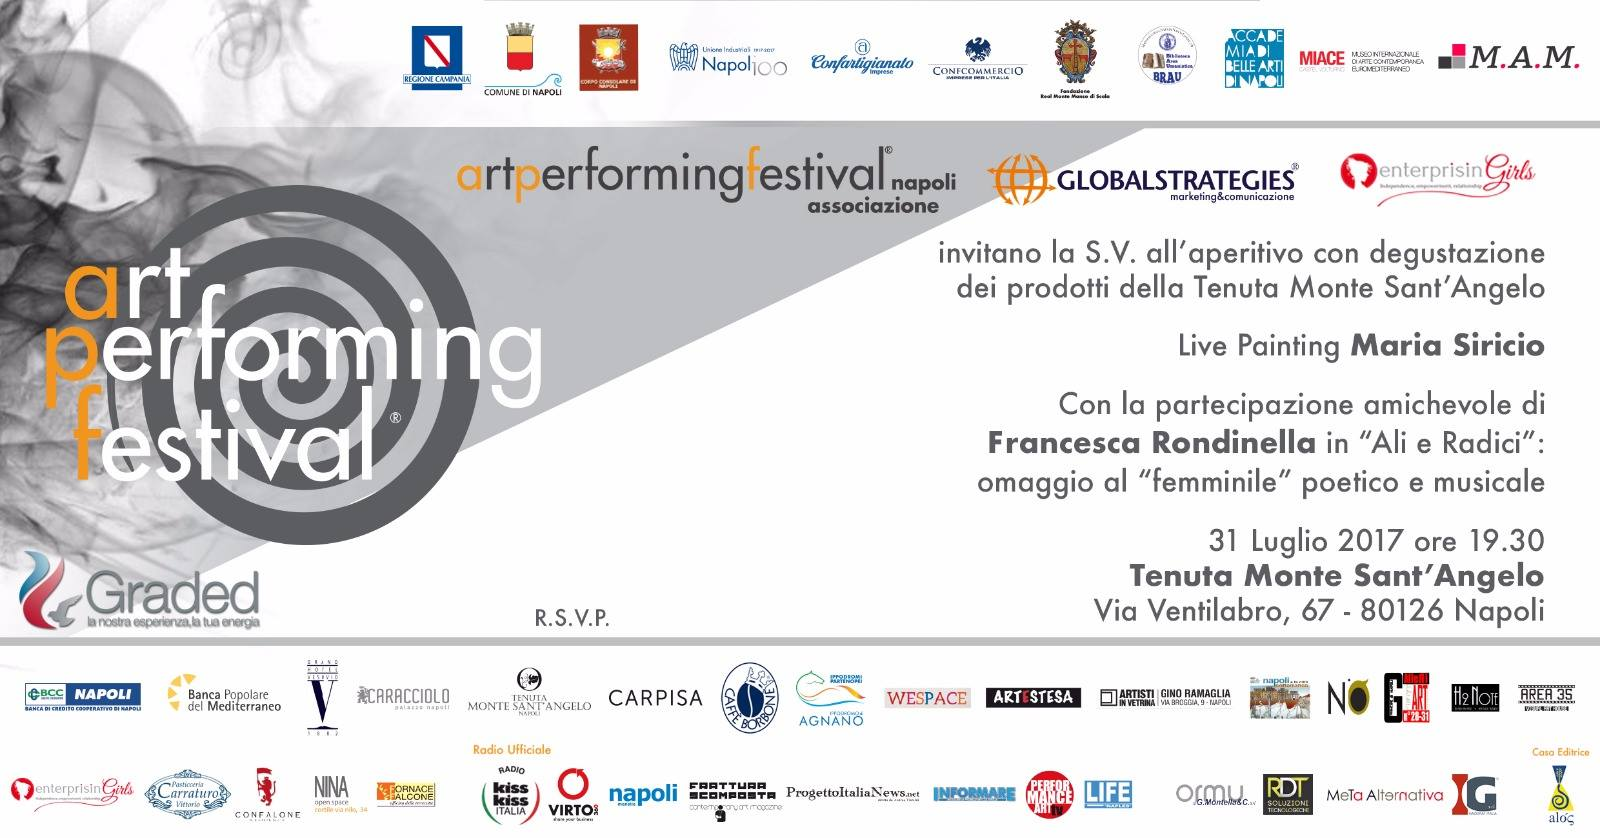 EnterprisinGirls presente a Art Performing Festival